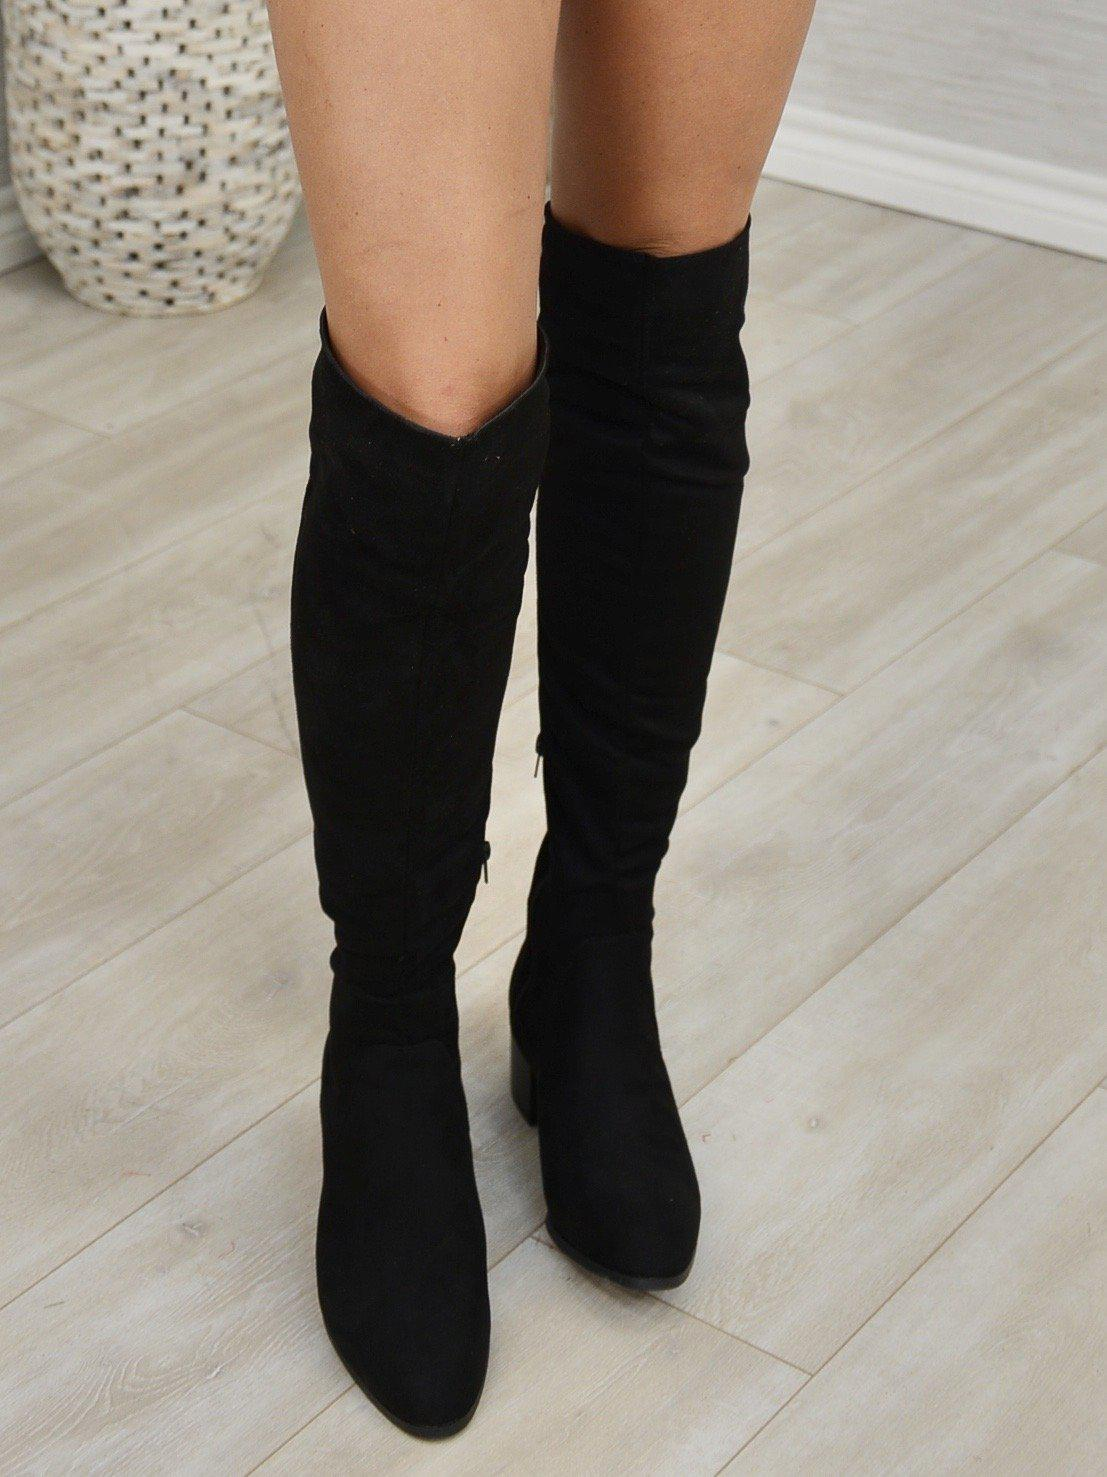 I'm Over It Boots-Women's -New Arrivals-Runway Seven - Women's Clothing Boutique